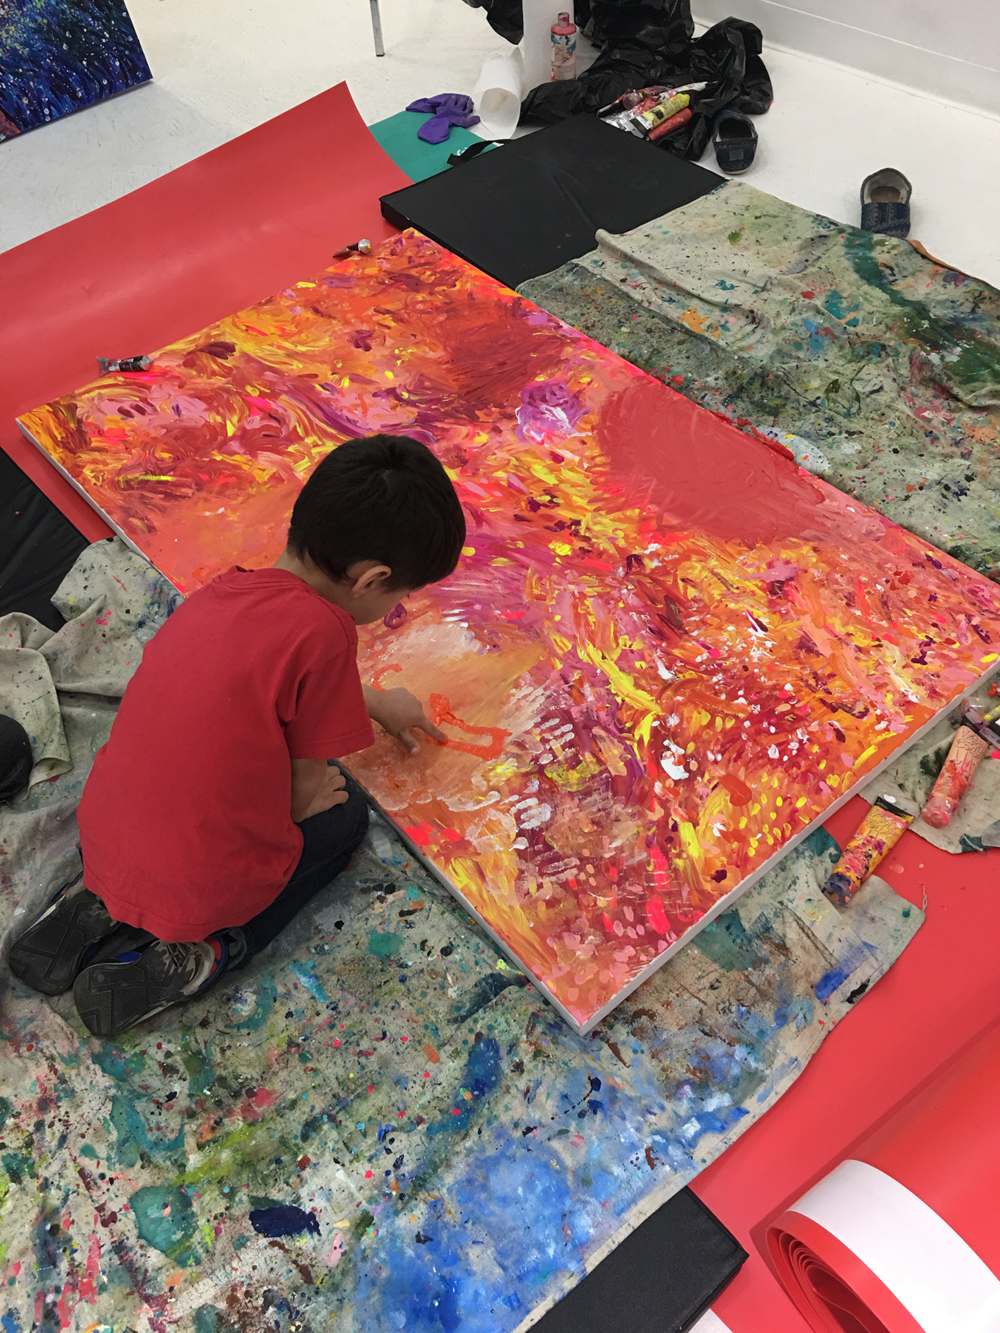 Toddler finger painting the Iris Scott's canvas at Filo Sofi Arts NYC.png